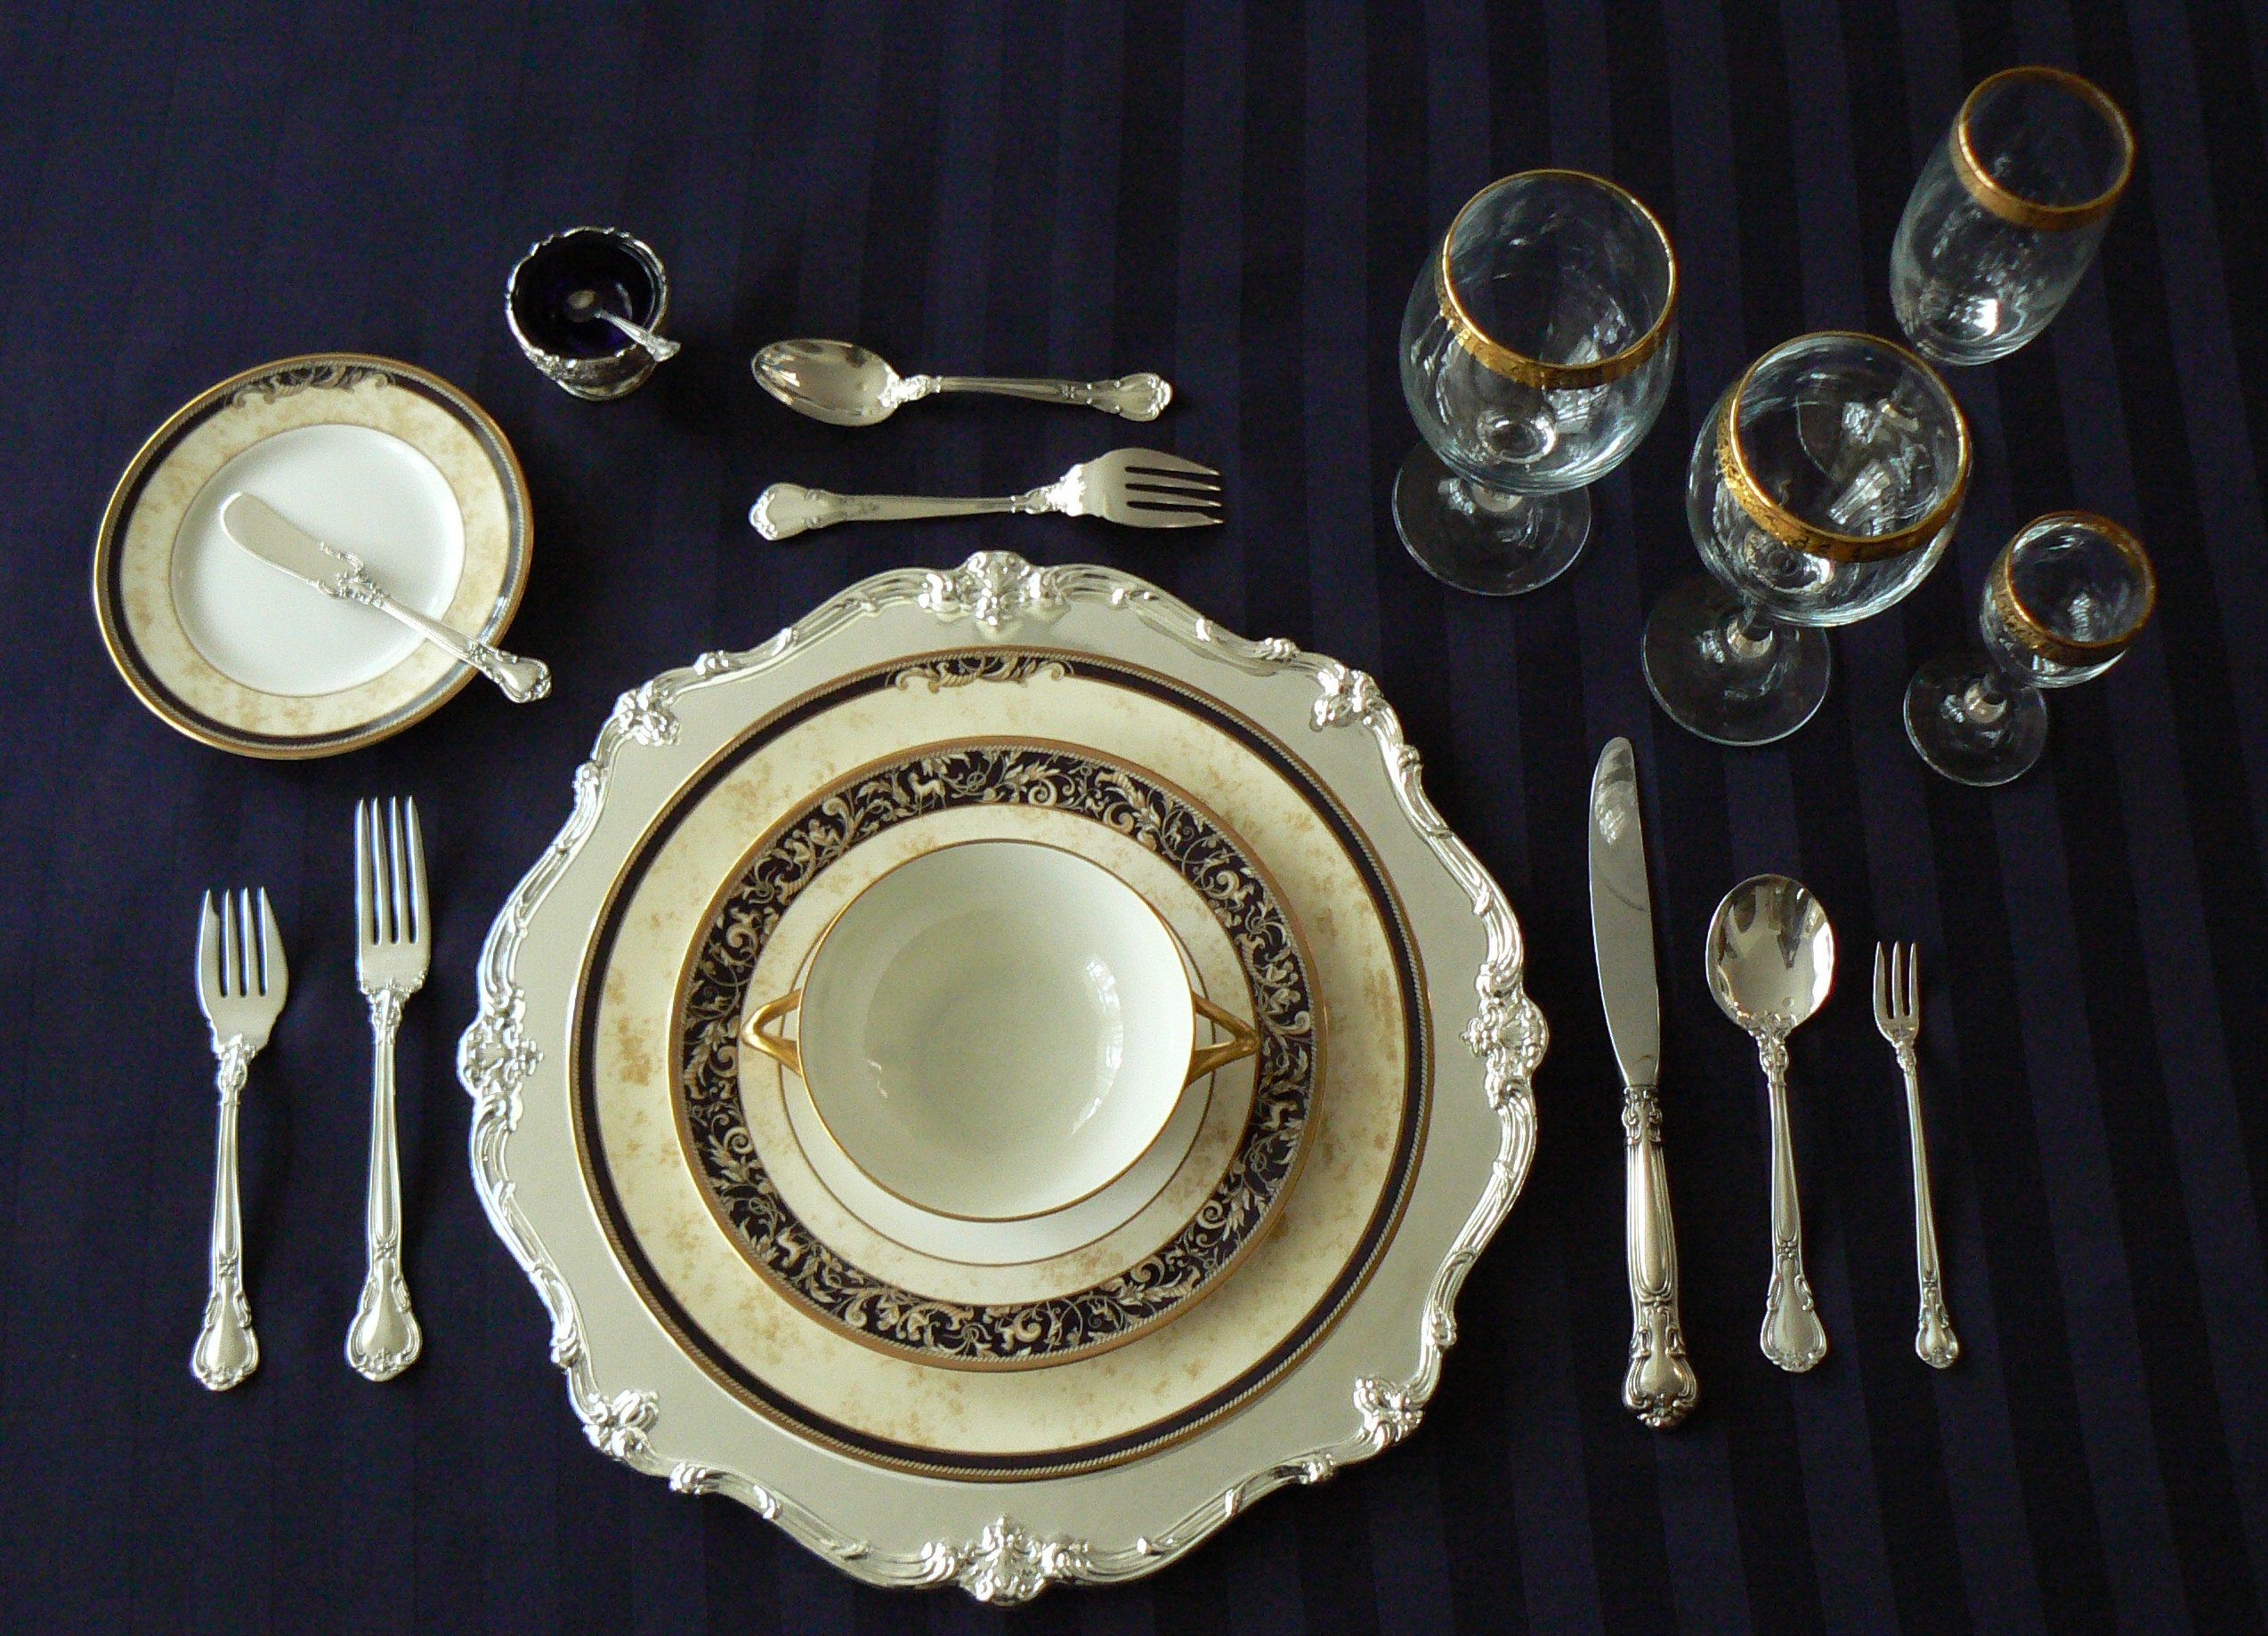 Amusing Design Of The Table Place Setting With Black Napkins Added With Silver Spoon And Plate And Glass Ideas